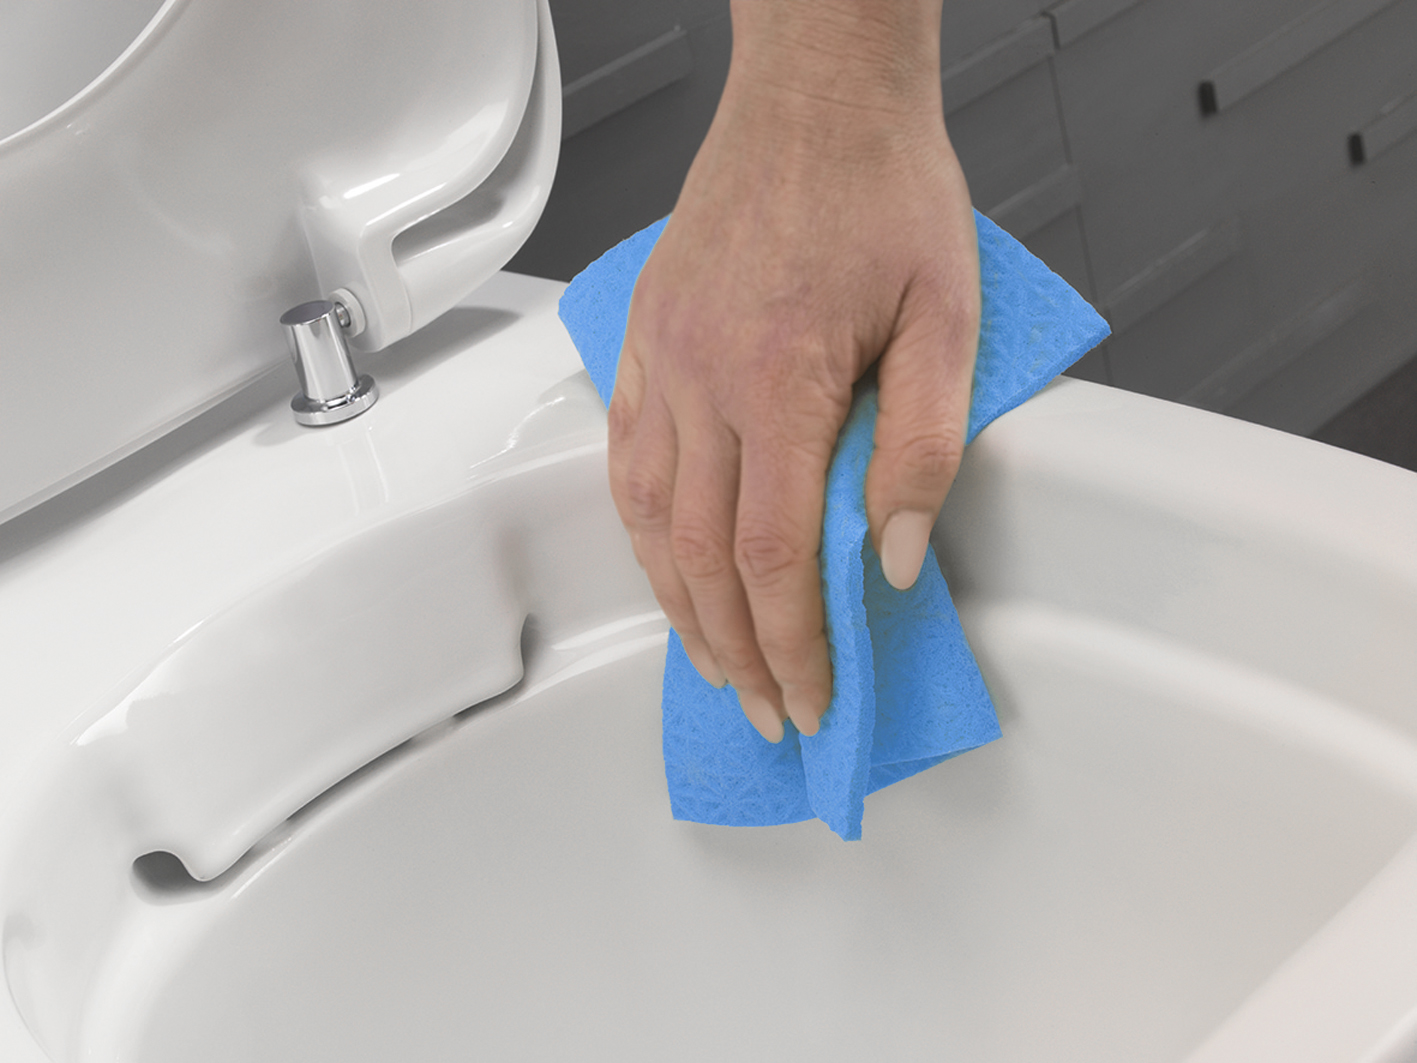 It has to be easy to clean the toilet, so with the new glaze Ifö has made you'll need less cleaner which makes it much more sustainable.